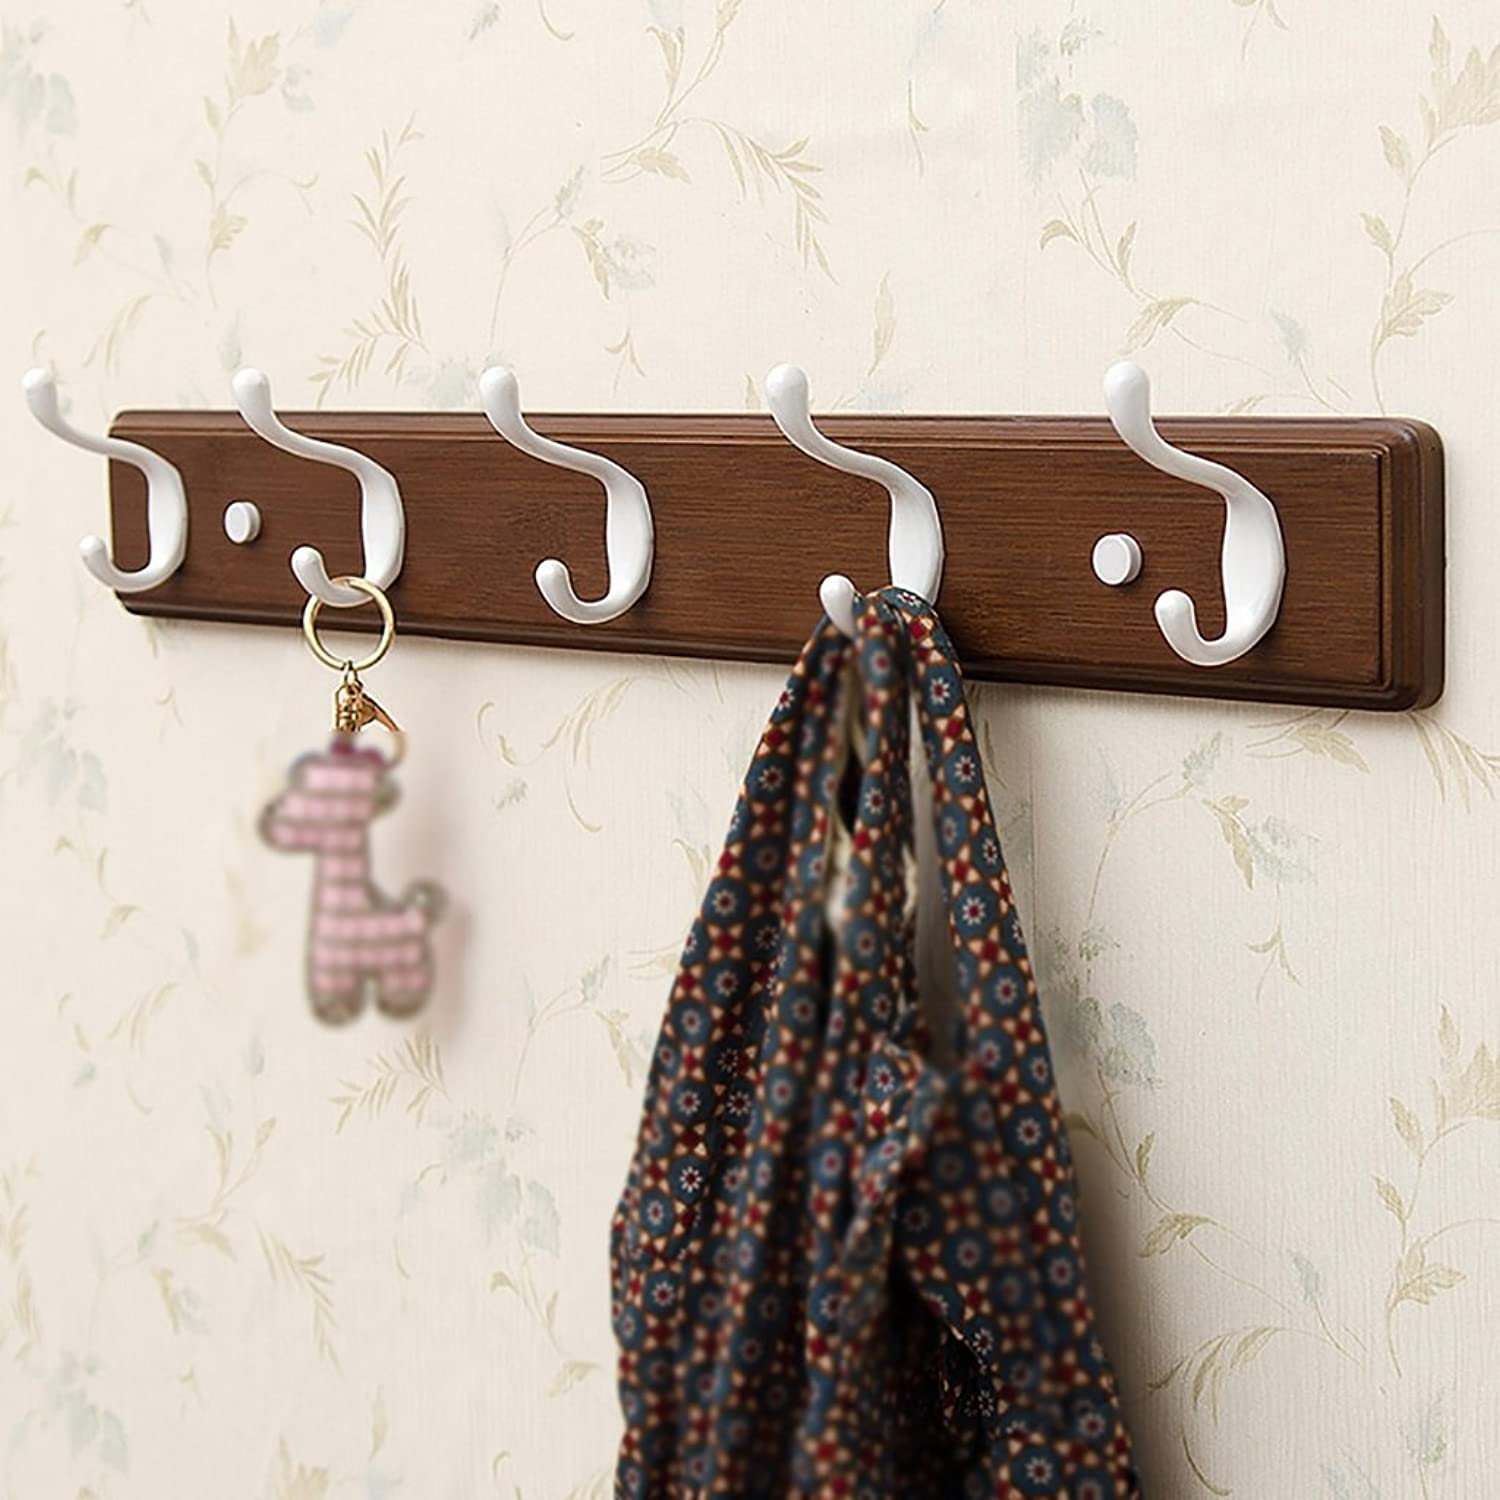 LXLA- Shelf Hangers Coat Rack Hook Up Double Wood Bamboo Wall-mounted White,Brown,Black (Available 3,4,5,6,Hooks,35.5 48.2 61 73.8  7.8  8 cm) ( color   Vintage color , Size   5 hooks )